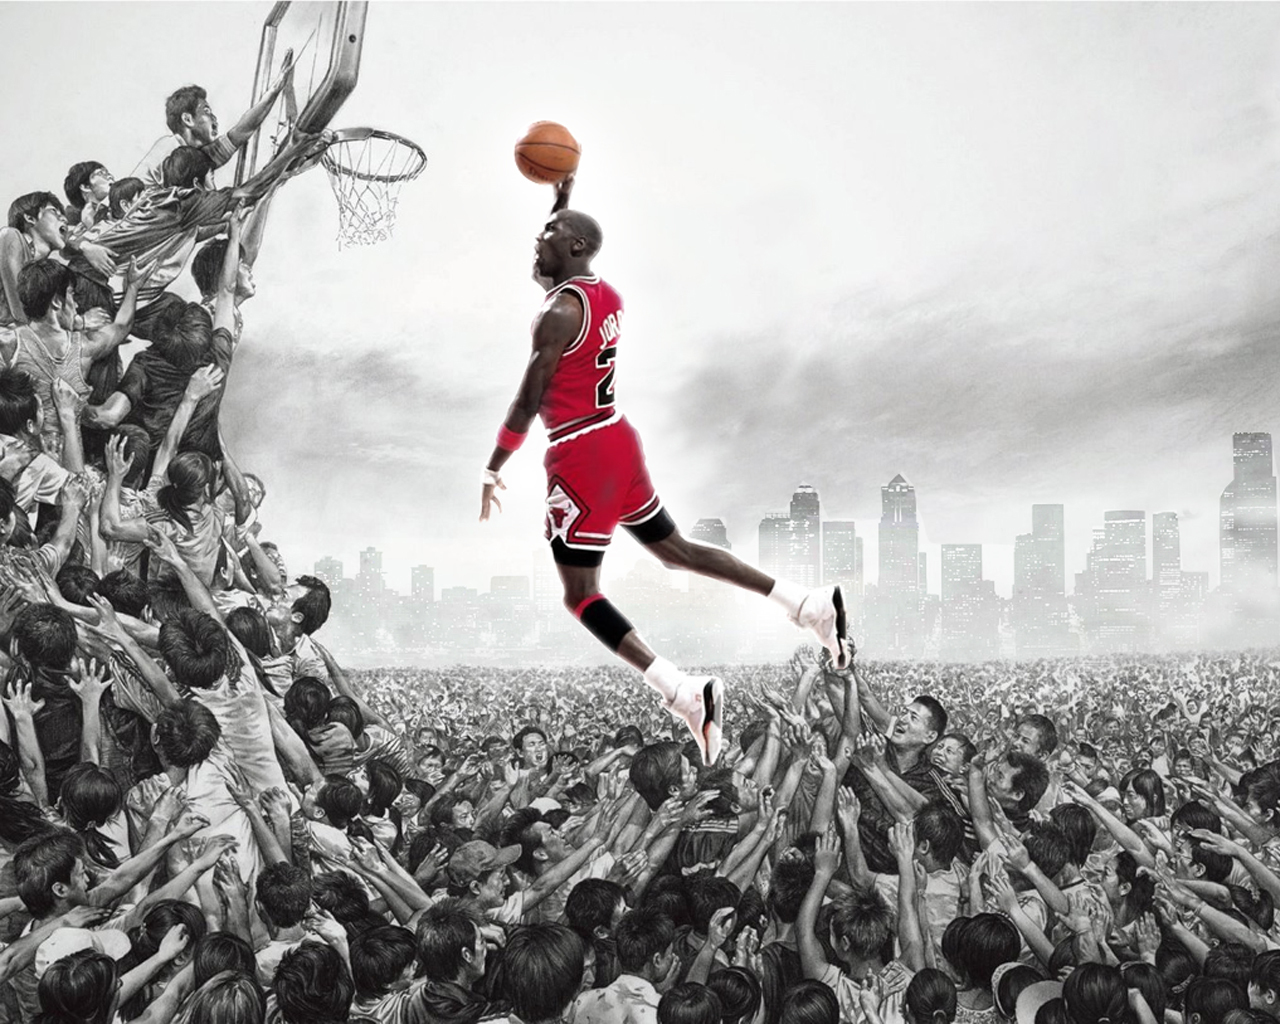 Michael-Jordan-wallpaper.jpg